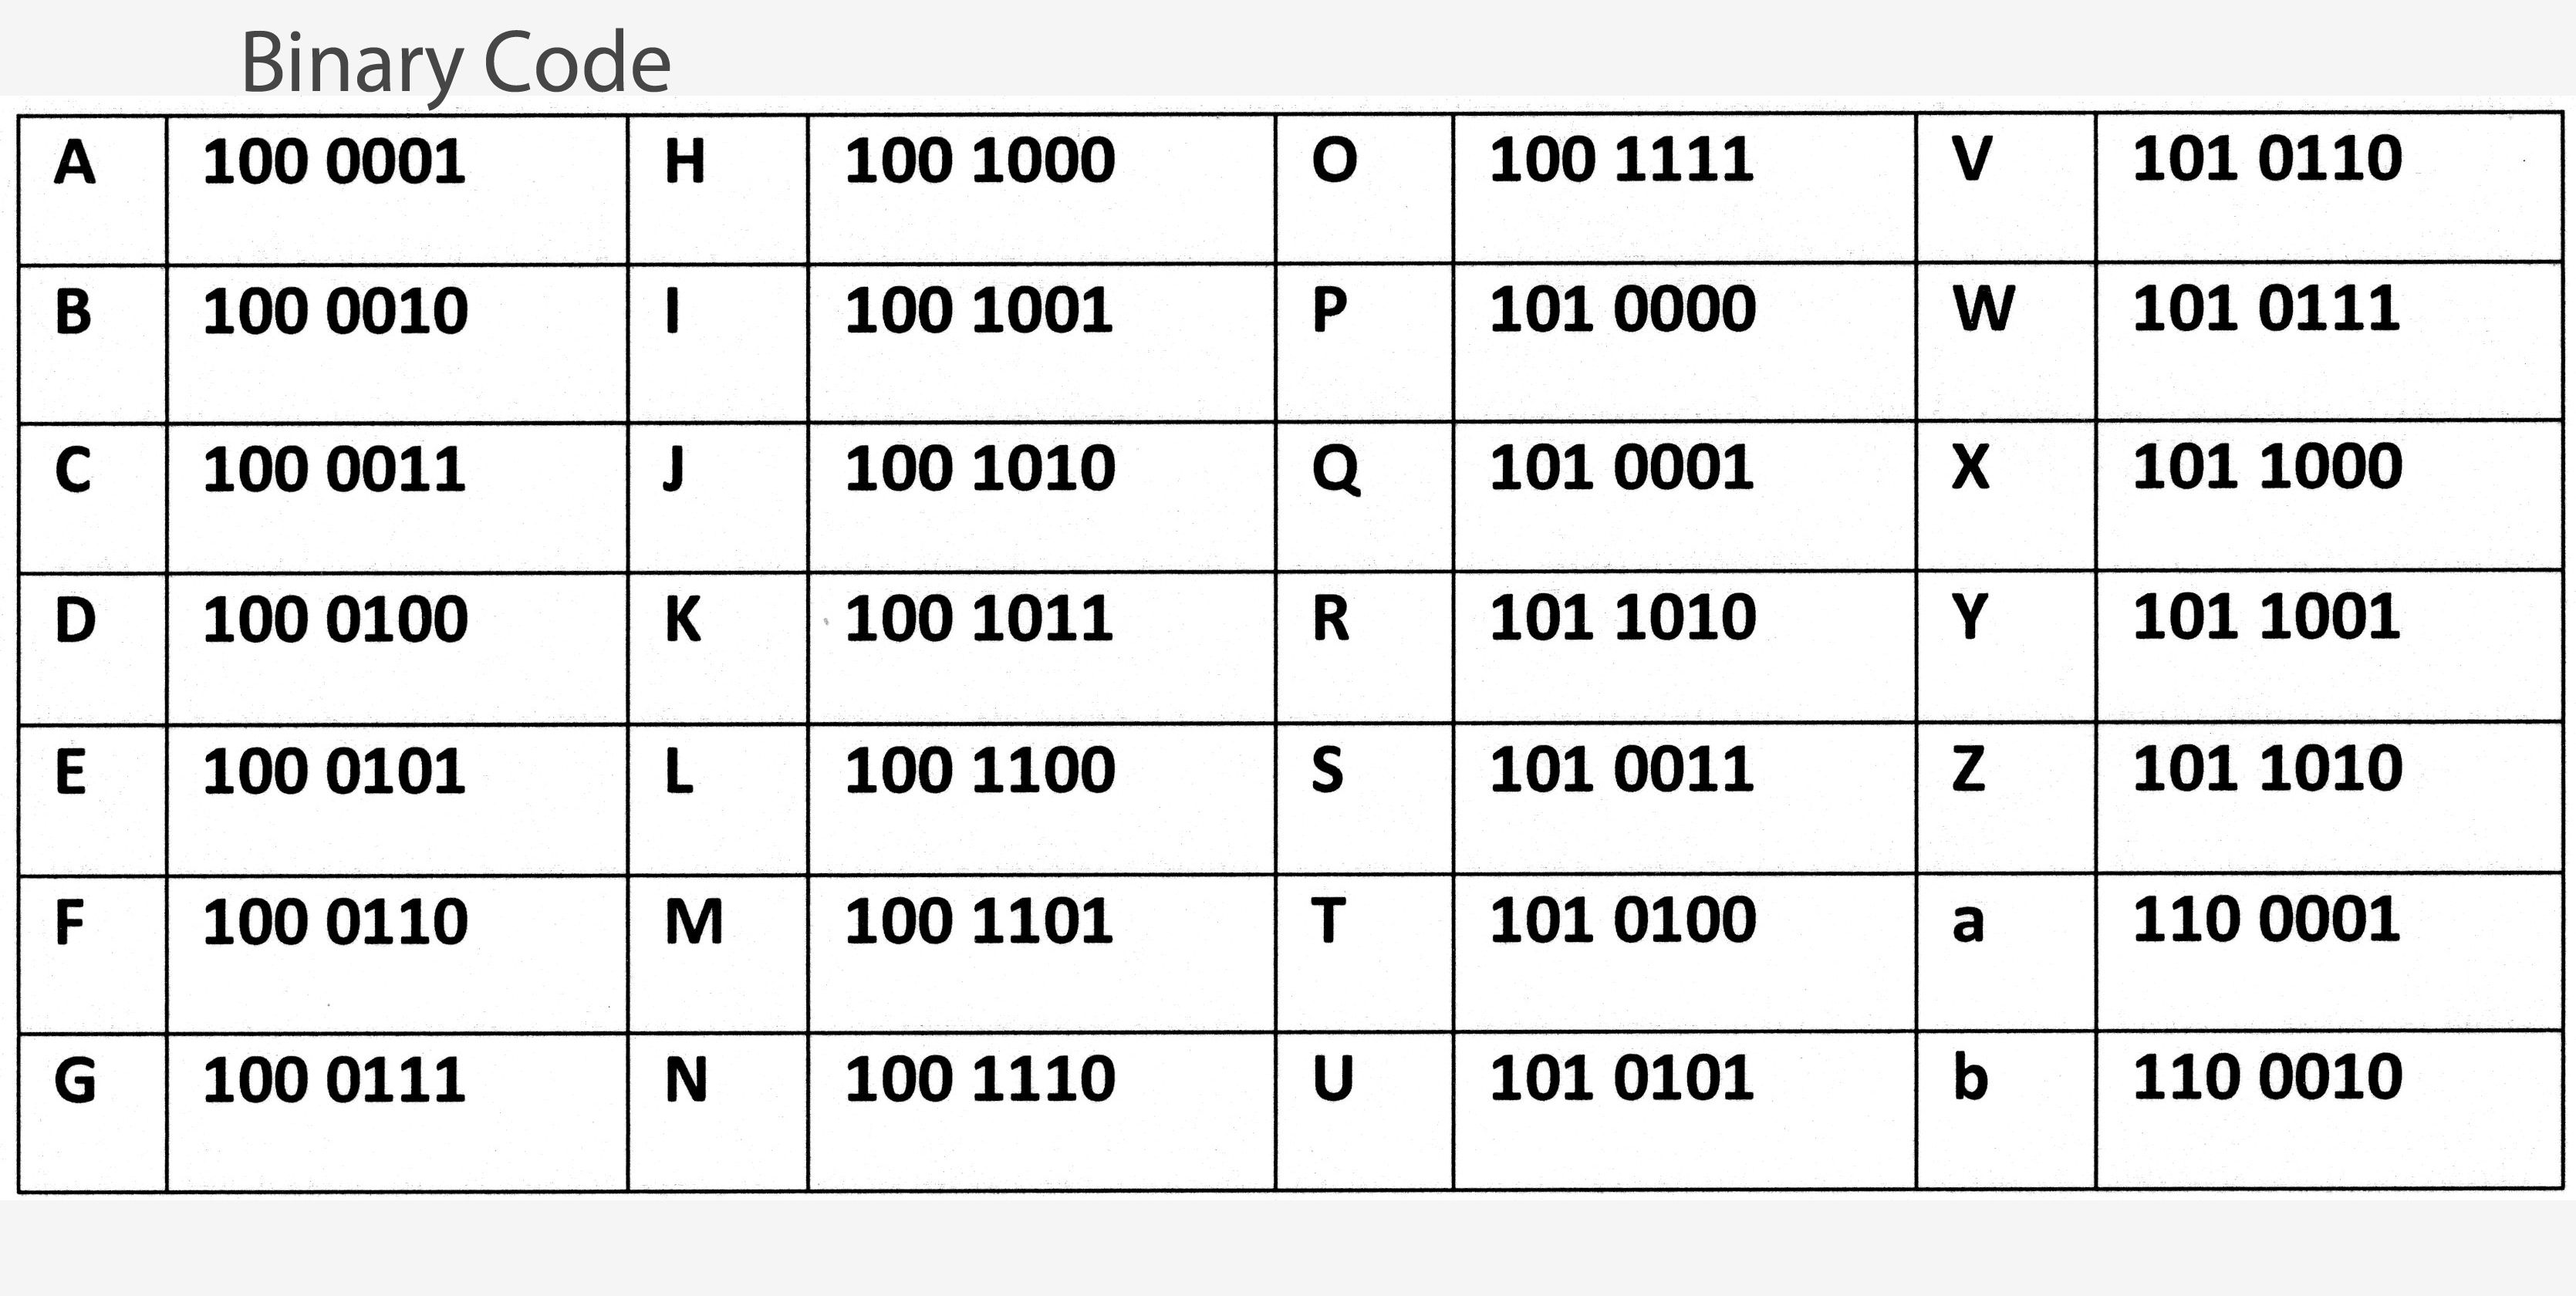 Binary Code Alphabet Conversion To Number